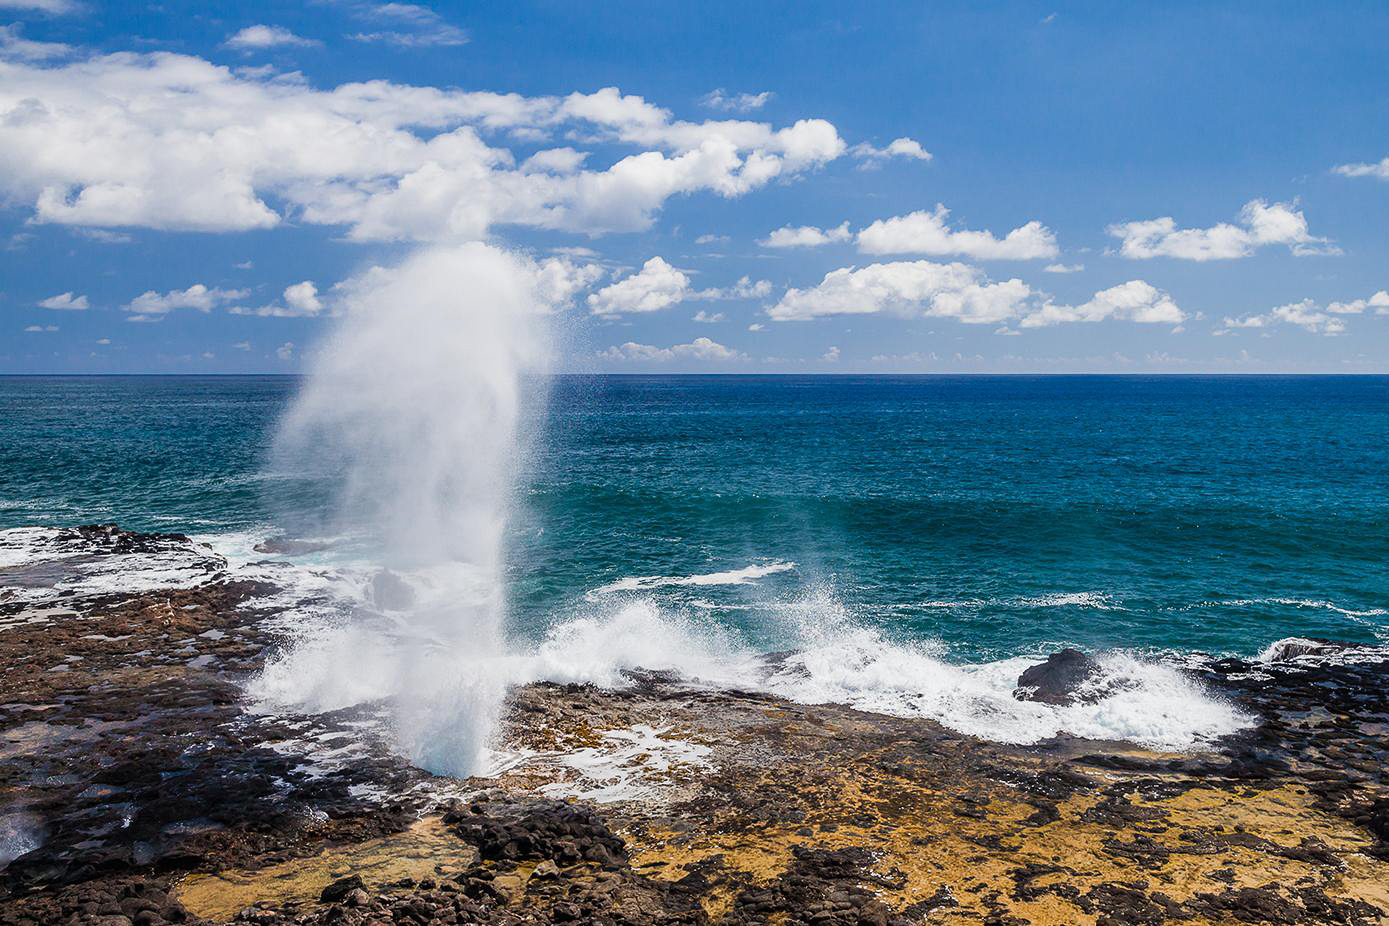 SPOUTING HORN - Spouting Horn is located in the Koloa district on the southern coast of Kauai. This area of Kauai is known for its crashing waves. These waves erode lava rocks on the coastline which can create narrow openings, as is the case with Spouting Horn.